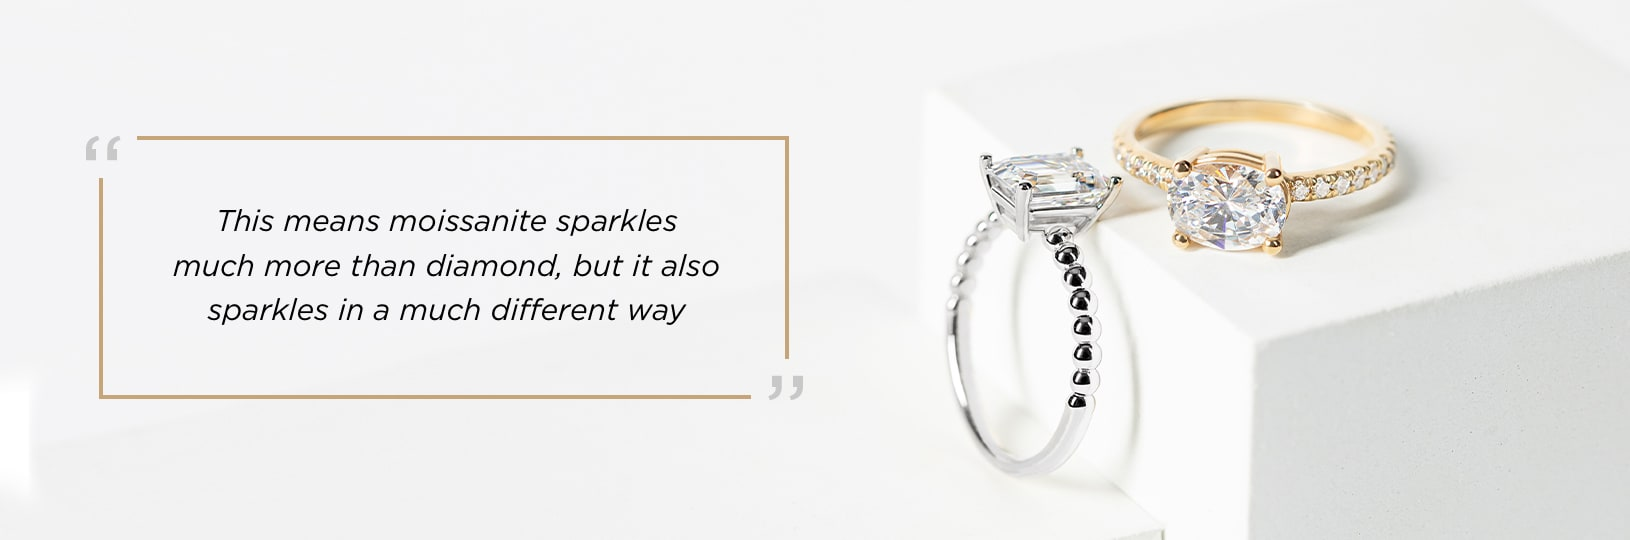 Moissanite sparkles in a much different way than a diamond